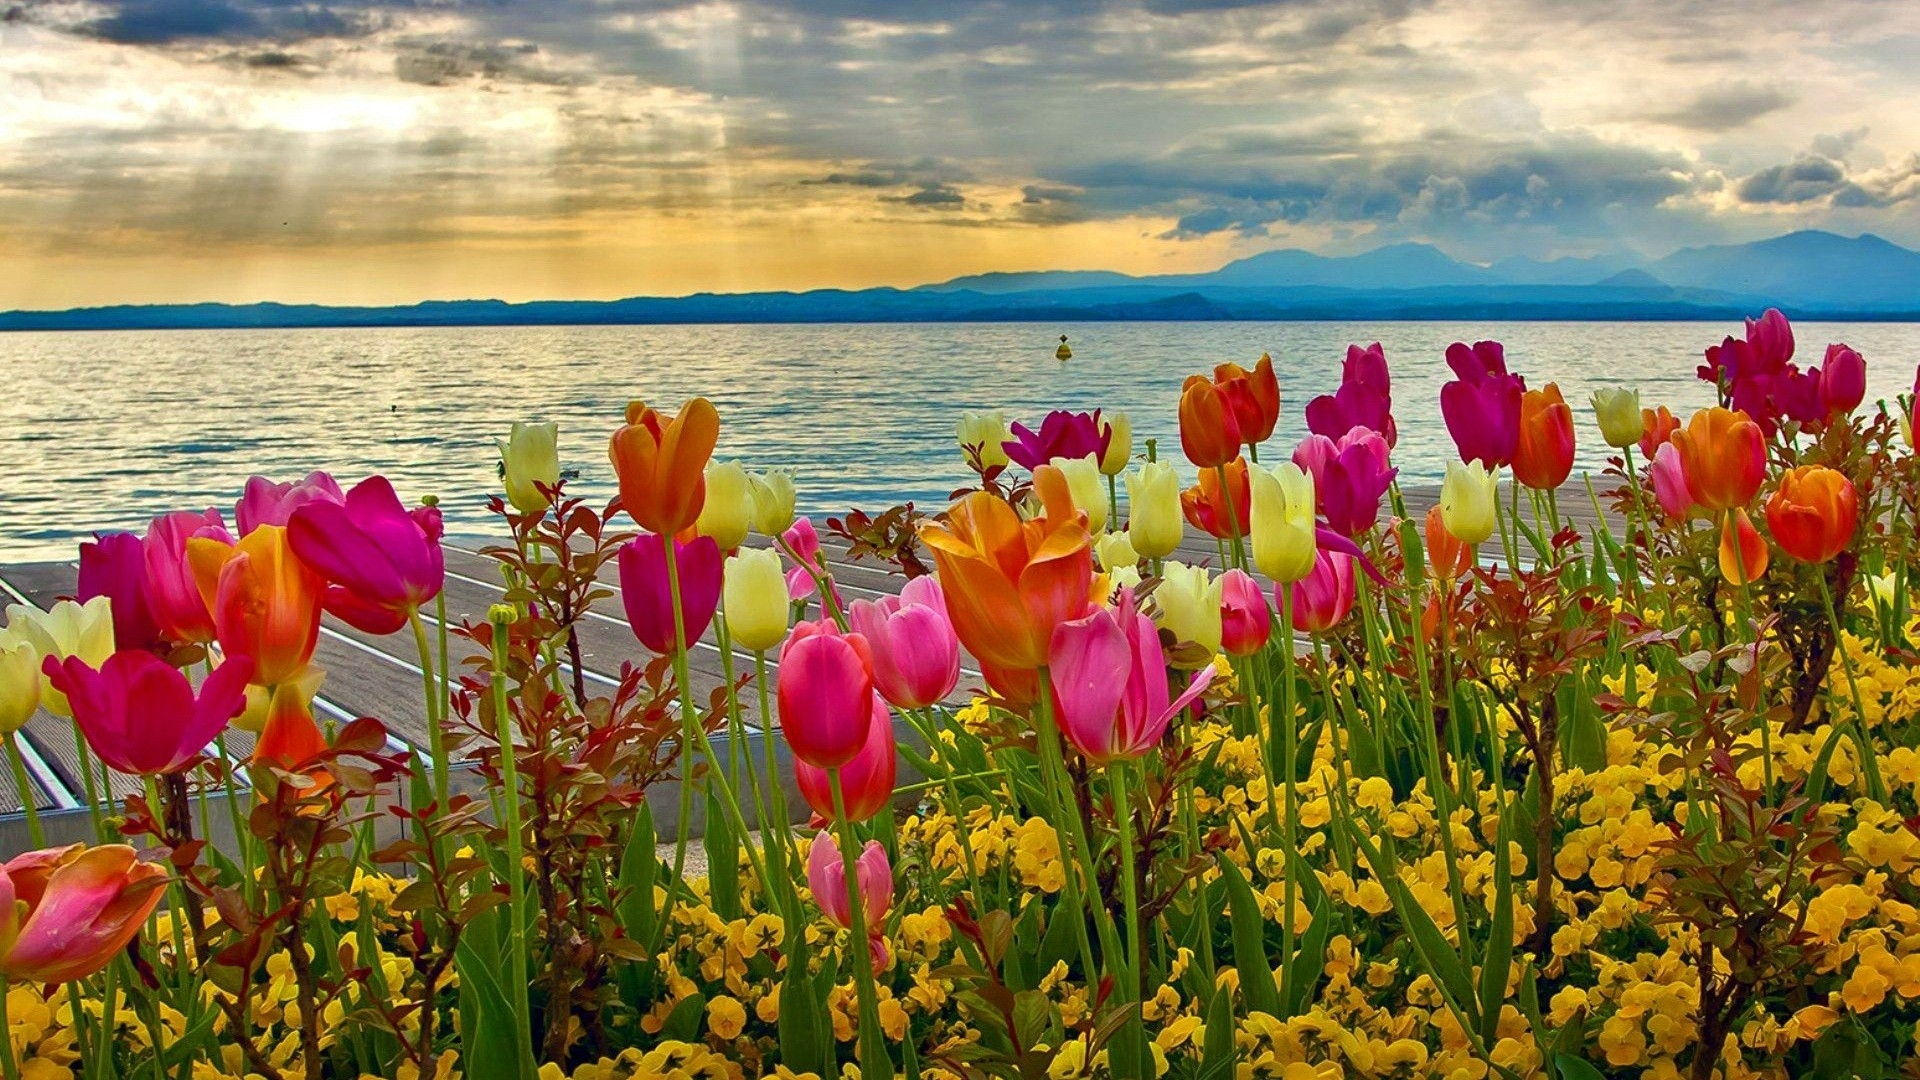 10 Latest Spring Backgrounds For Desktop FULL HD 1920×1080 For PC Desktop